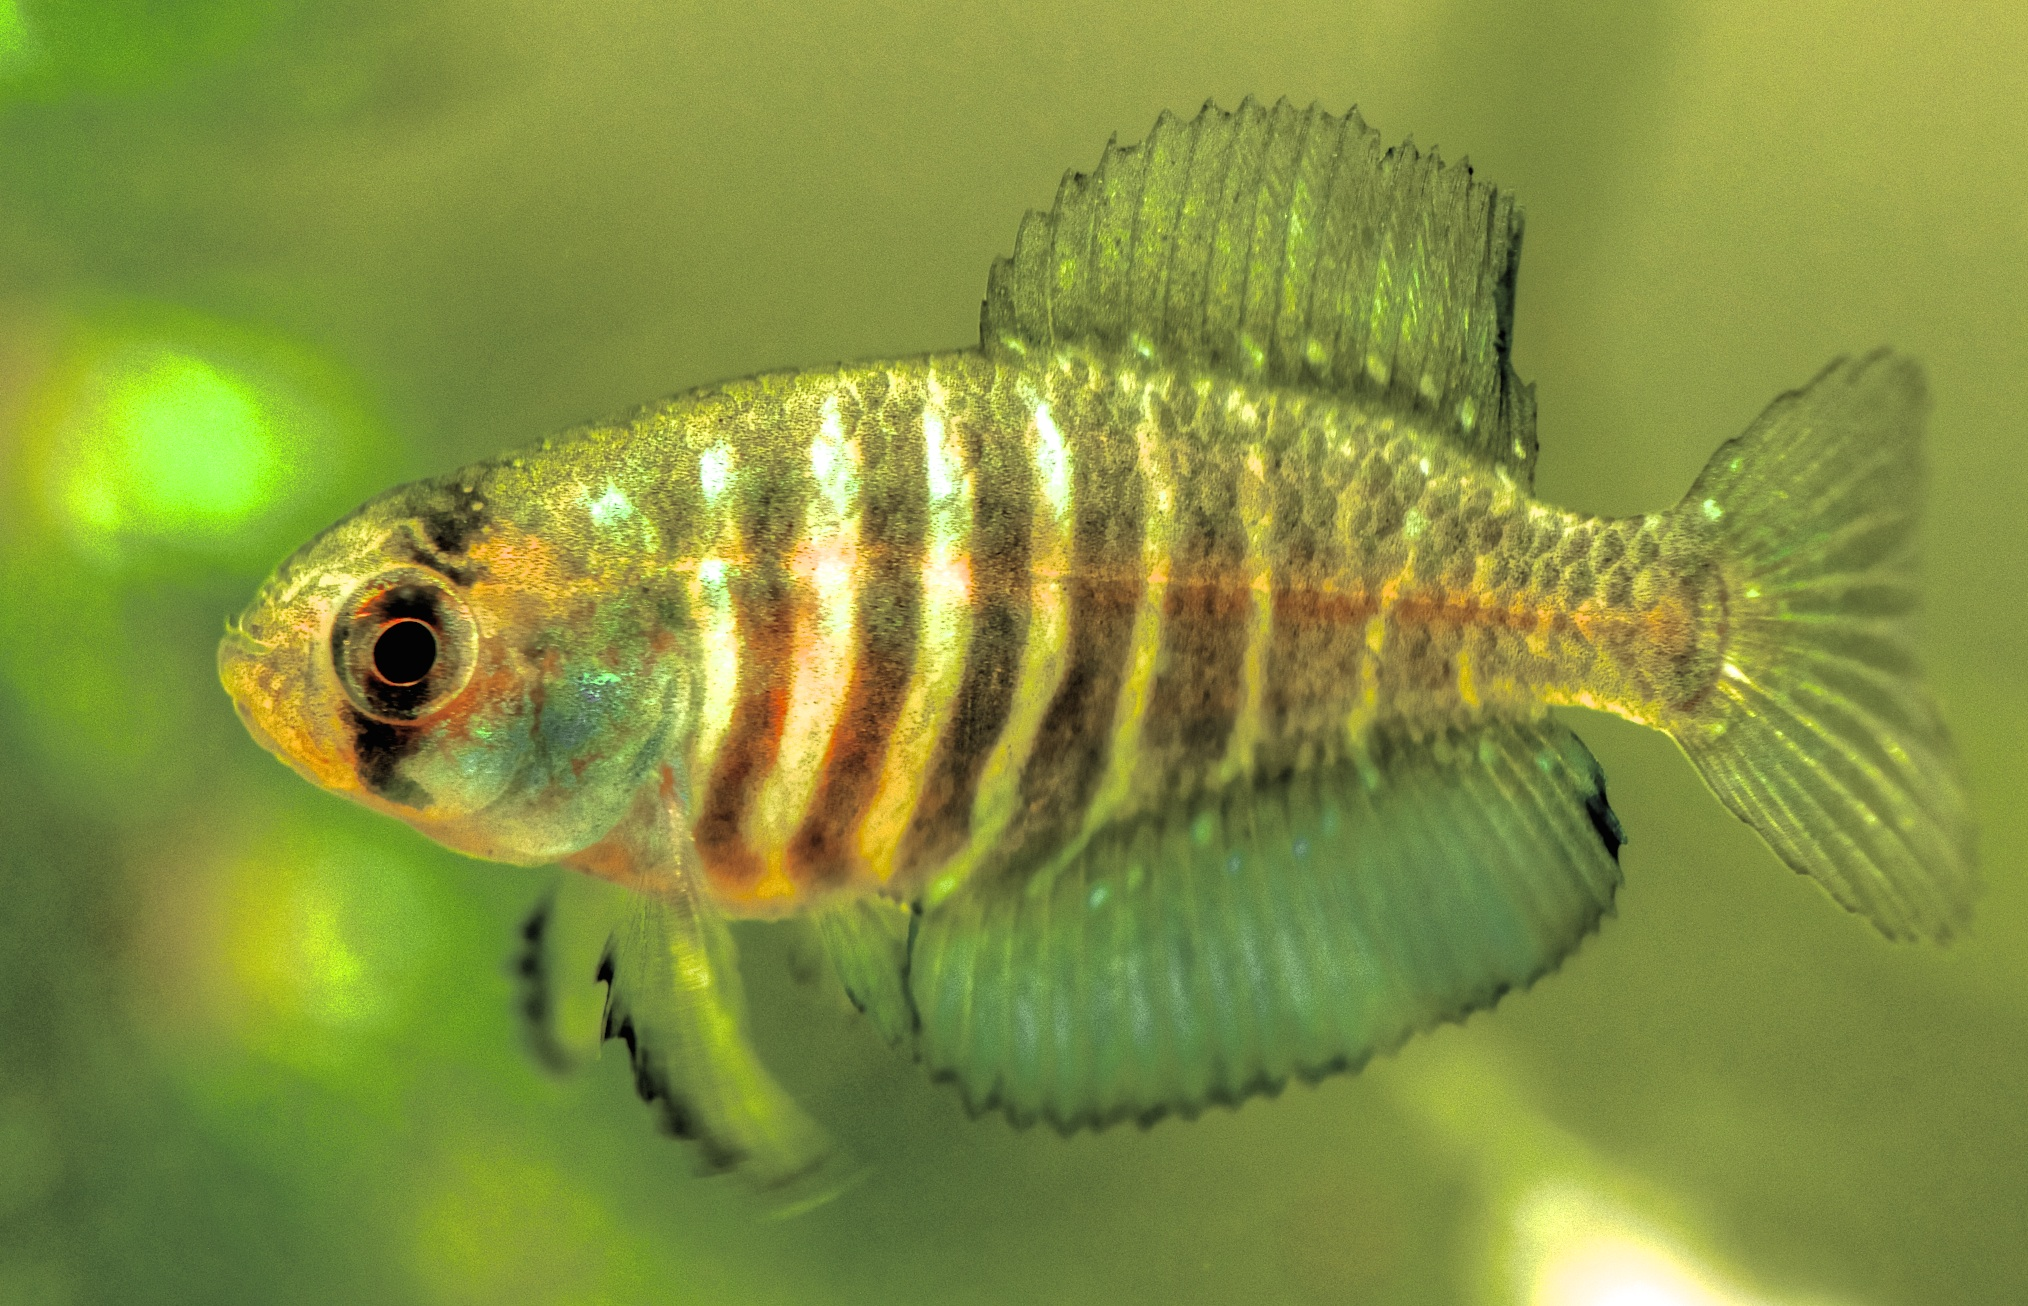 Austrolebias charr (male), an annual killifish